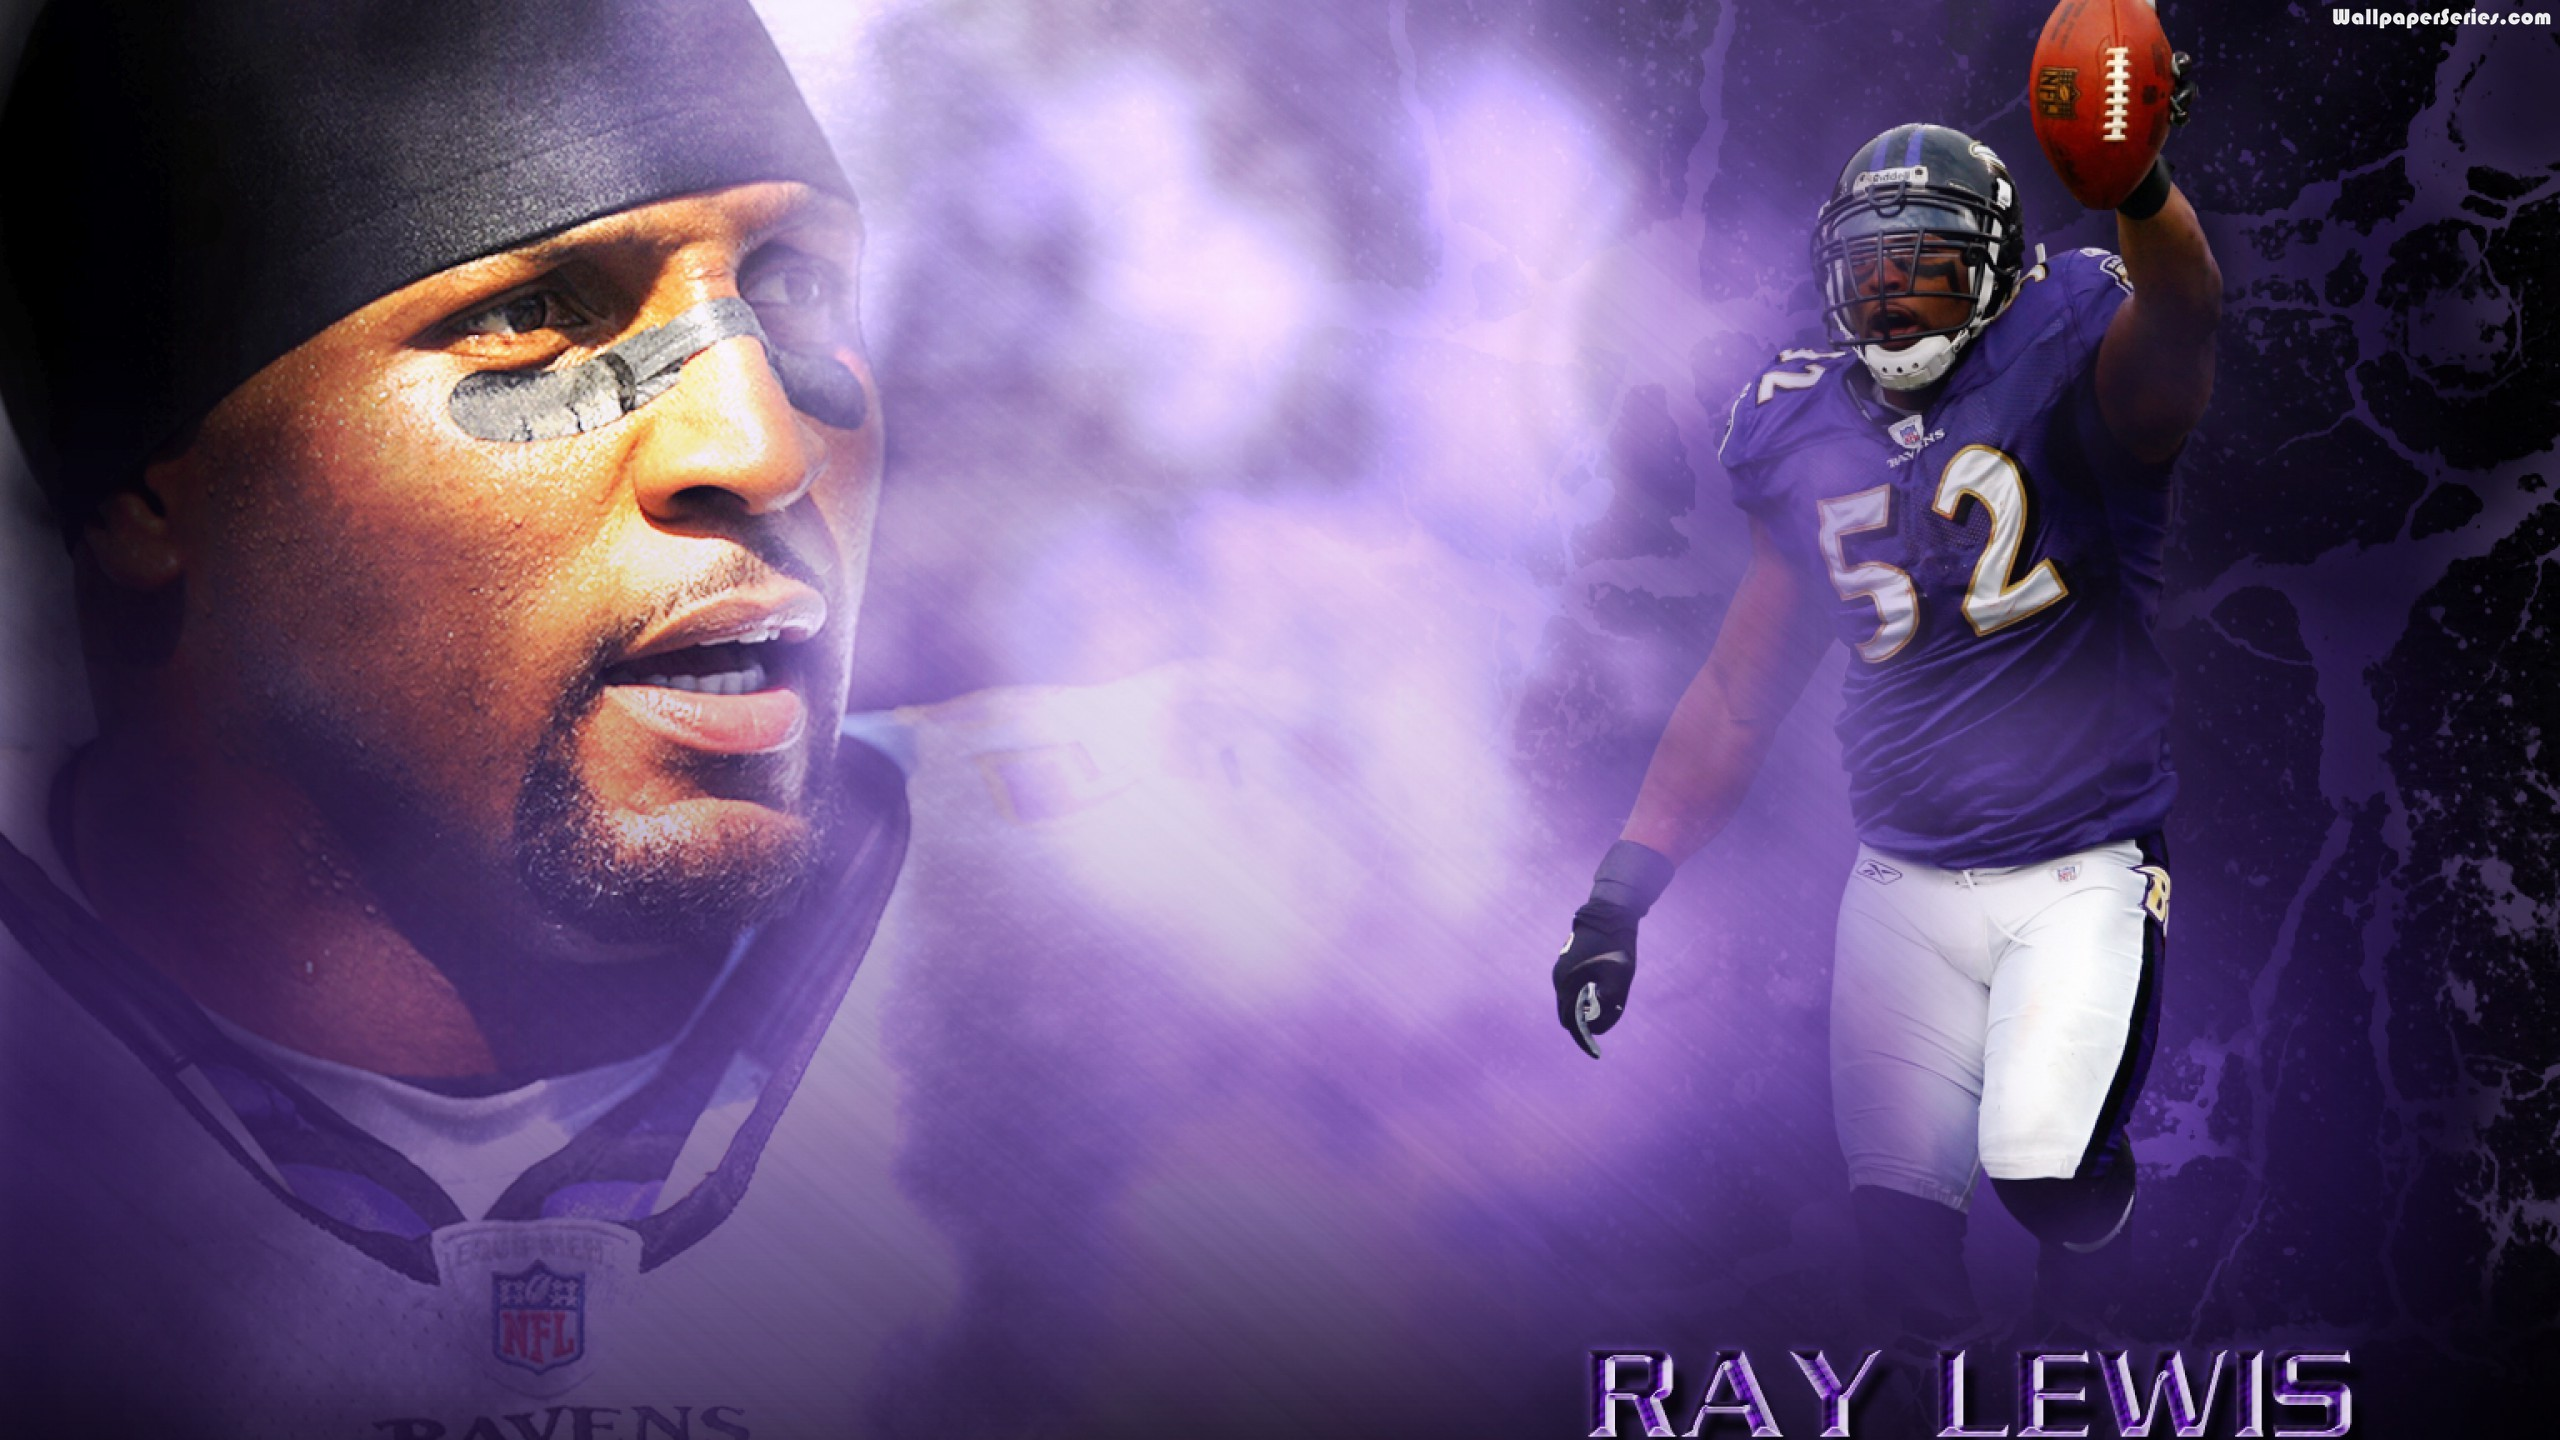 2560x1440, Ray, Lewis, Baltimore, Ravens, Baltimore Ravens, Football Team,